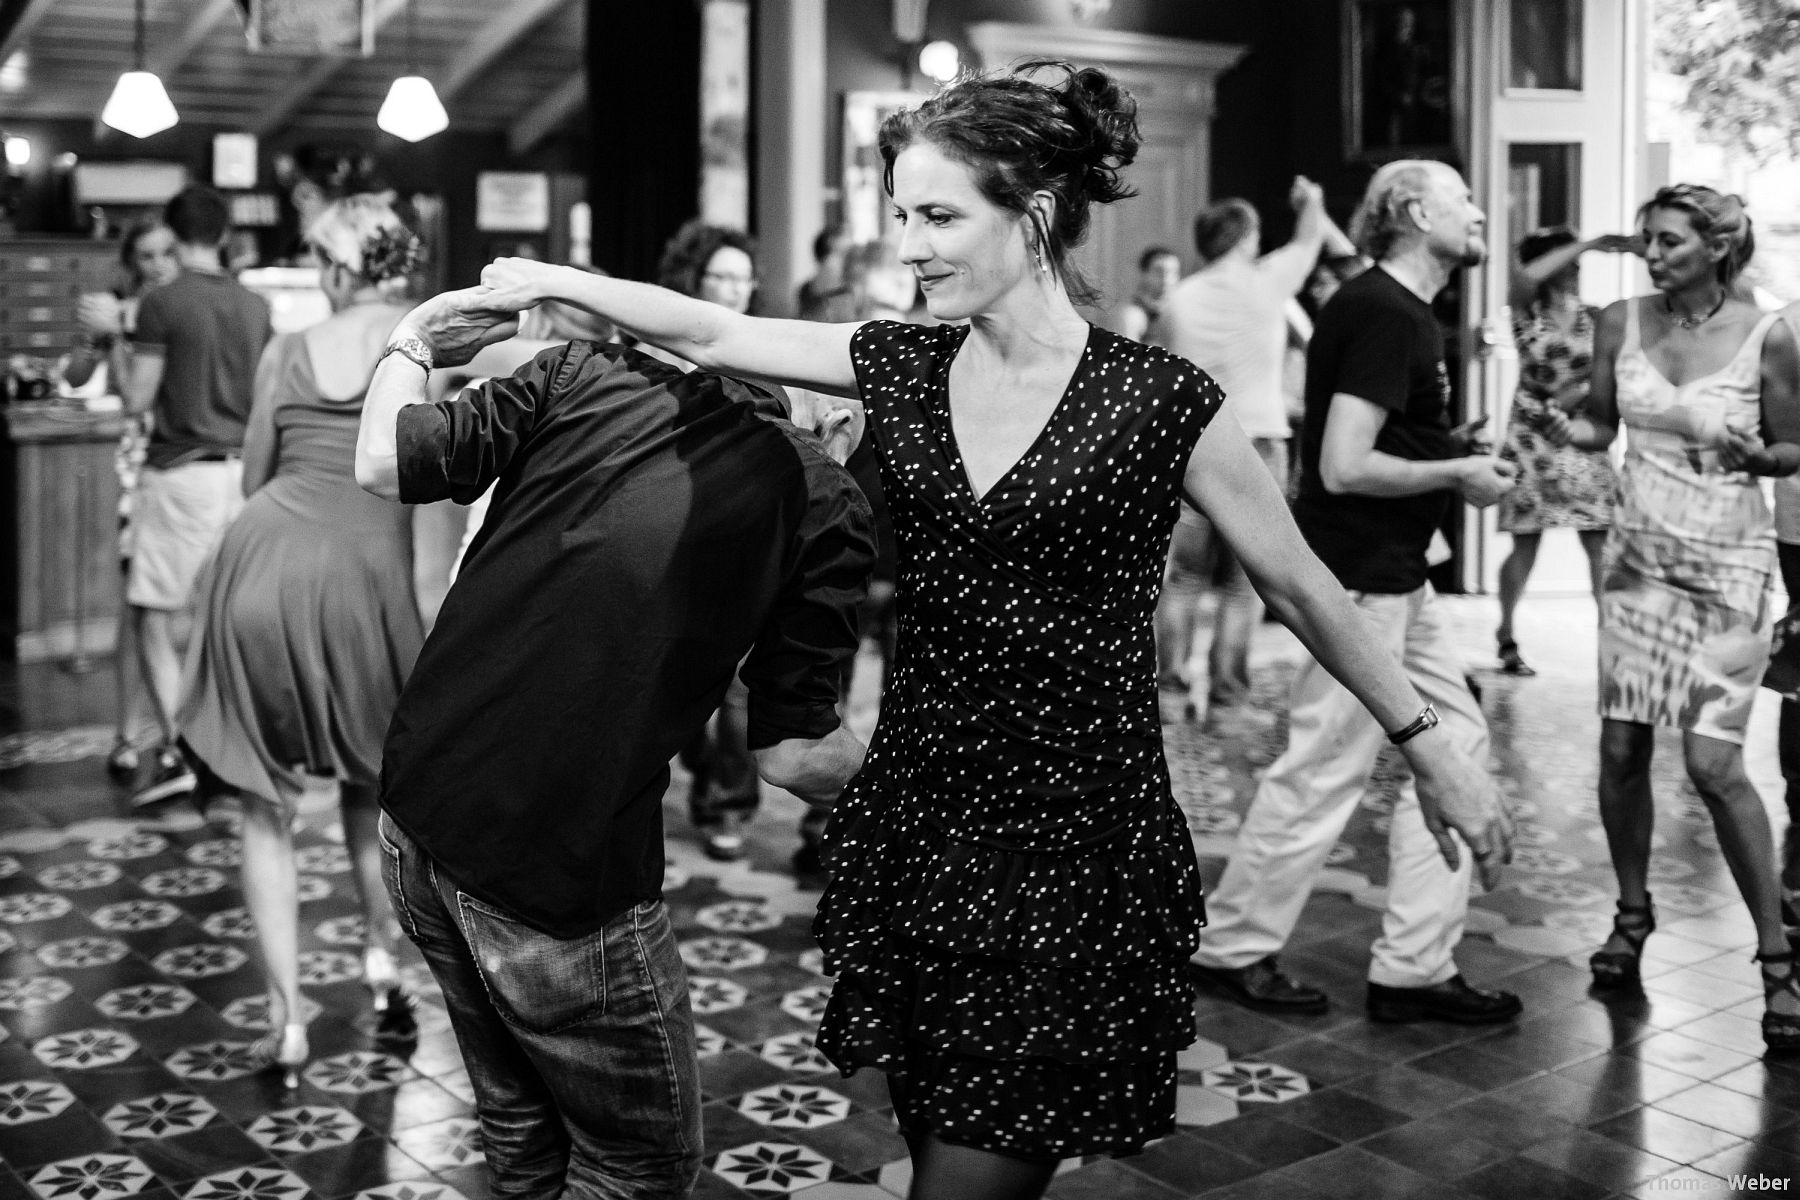 Fotograf Thomas Weber aus Oldenburg: Salsa- und Tango-Abende im Theater Laboratorium Oldenburg (39)